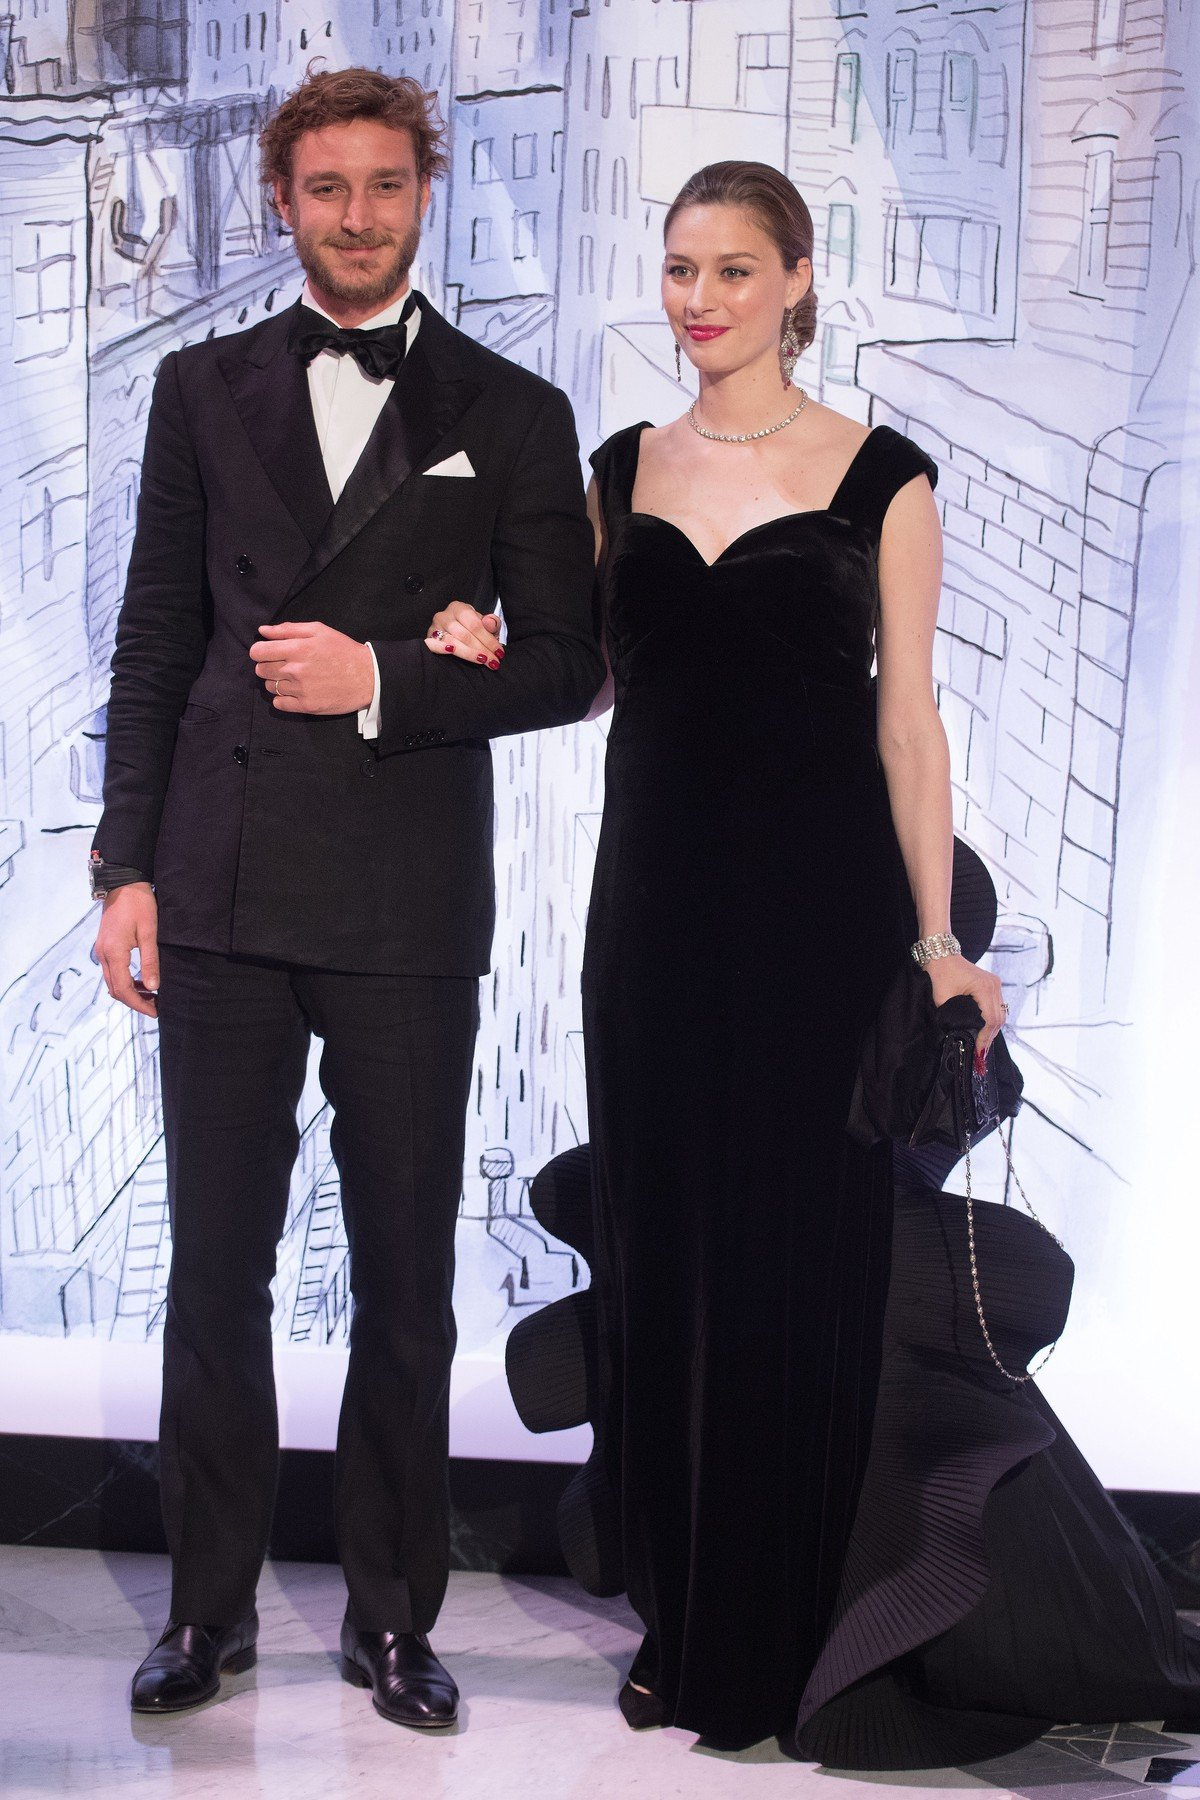 Pierre Casiraghi and Beatrice Casiraghi attend the Rose Ball 2018,  To Benefit The Princess Grace Foundation at Sporting Monte-Carlo in Monaco, MONACO on March 24, 2018//NIVIERE_069NIV/Credit:Niviere/Villard/SIPA/1803250640, Image: 366888280, License: Rights-managed, Restrictions: , Model Release: no, Credit line: Profimedia, TEMP Sipa Press